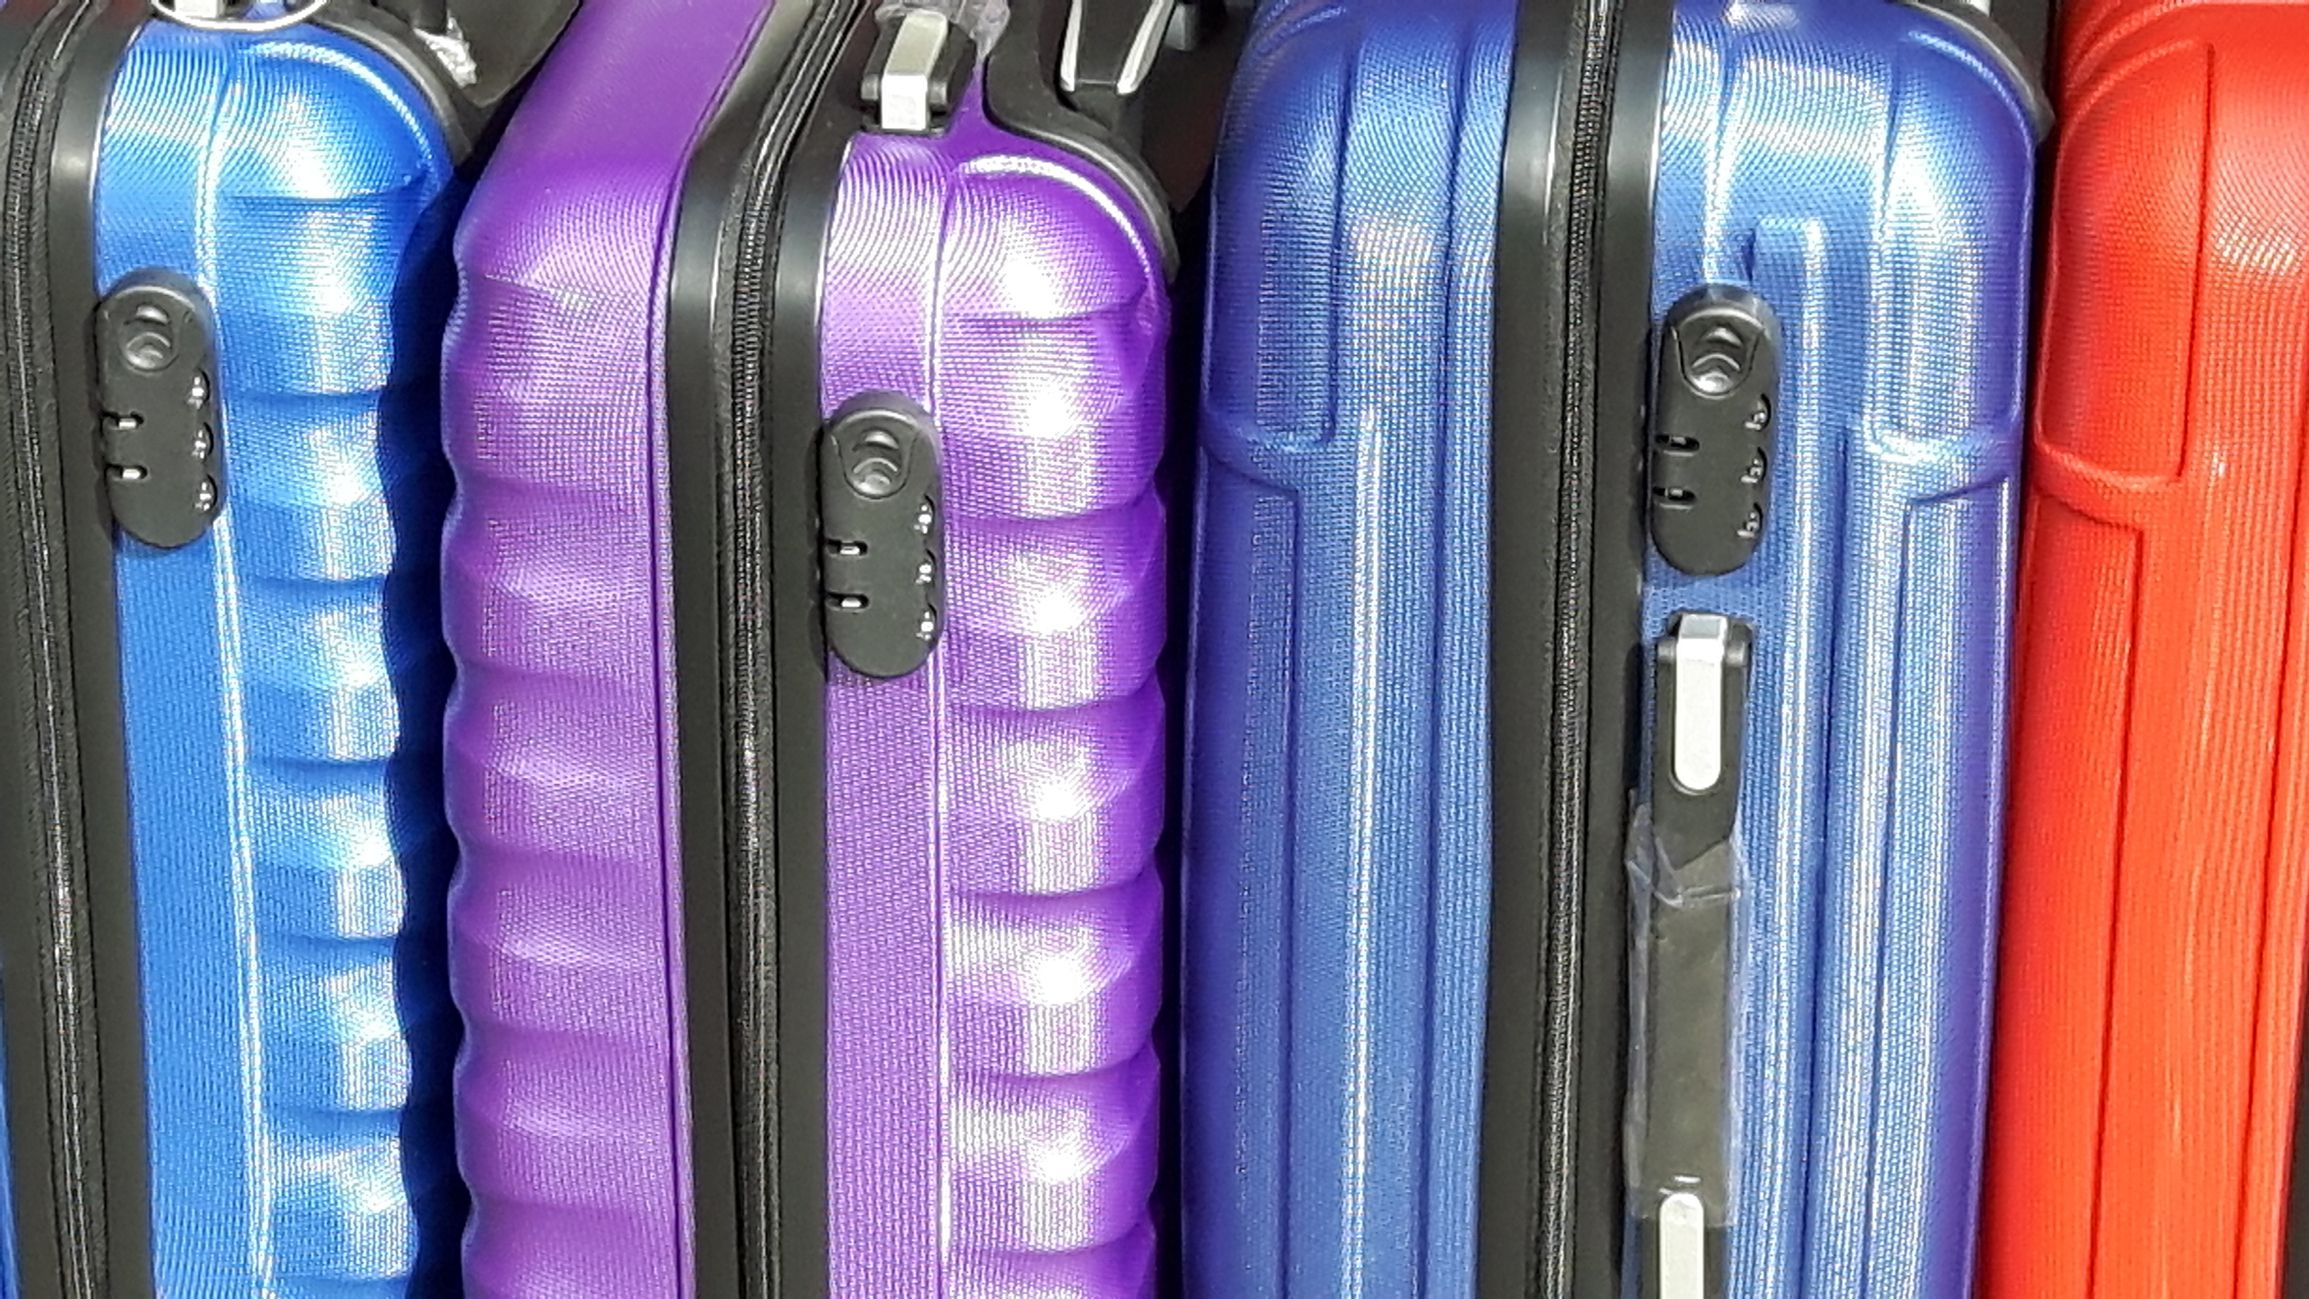 Full Frame Shot Of Colorful Luggage